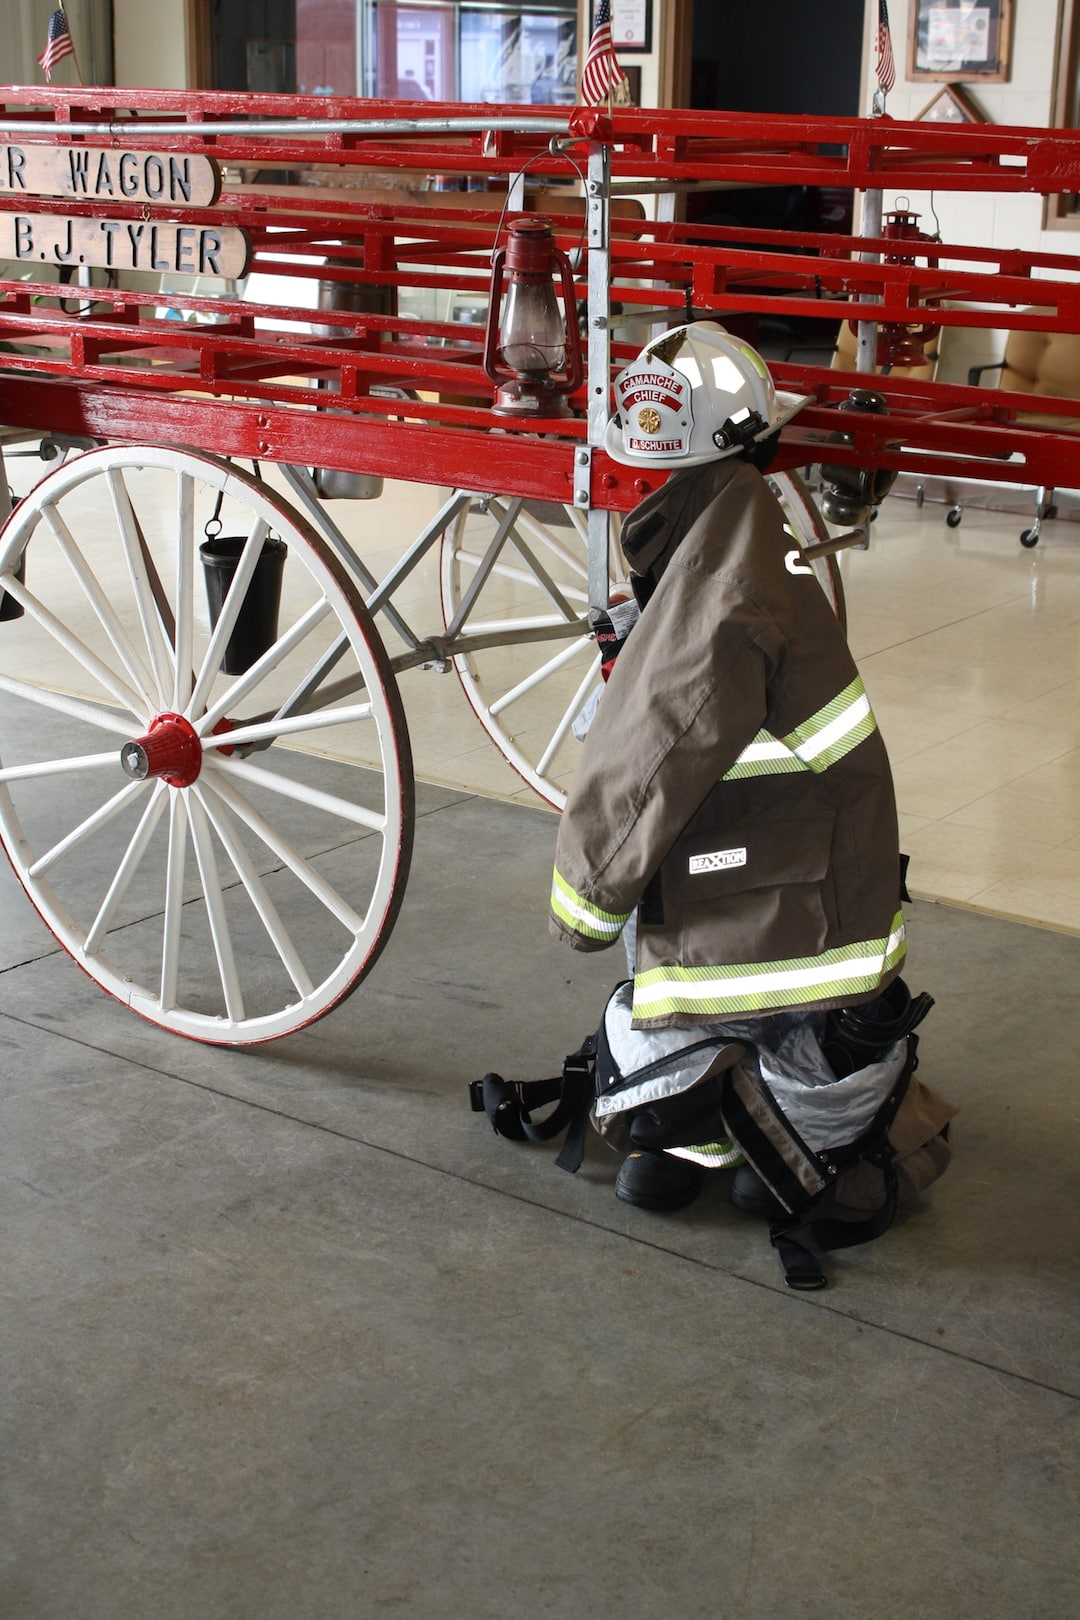 Firefighter Personal Protective Equipment